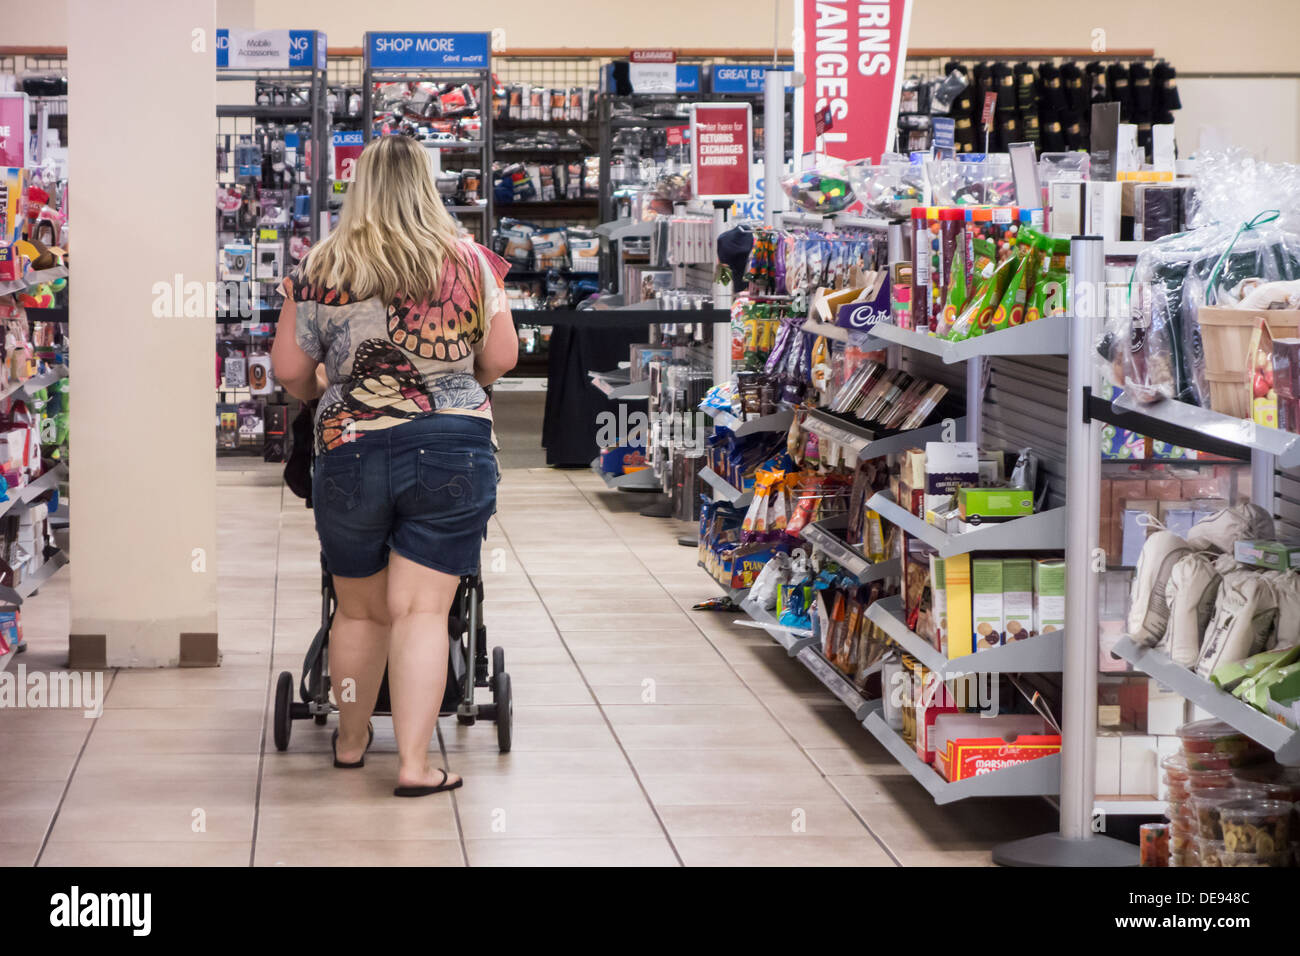 A Young, Obese Woman Shops In A Department Store While Pushing A ...